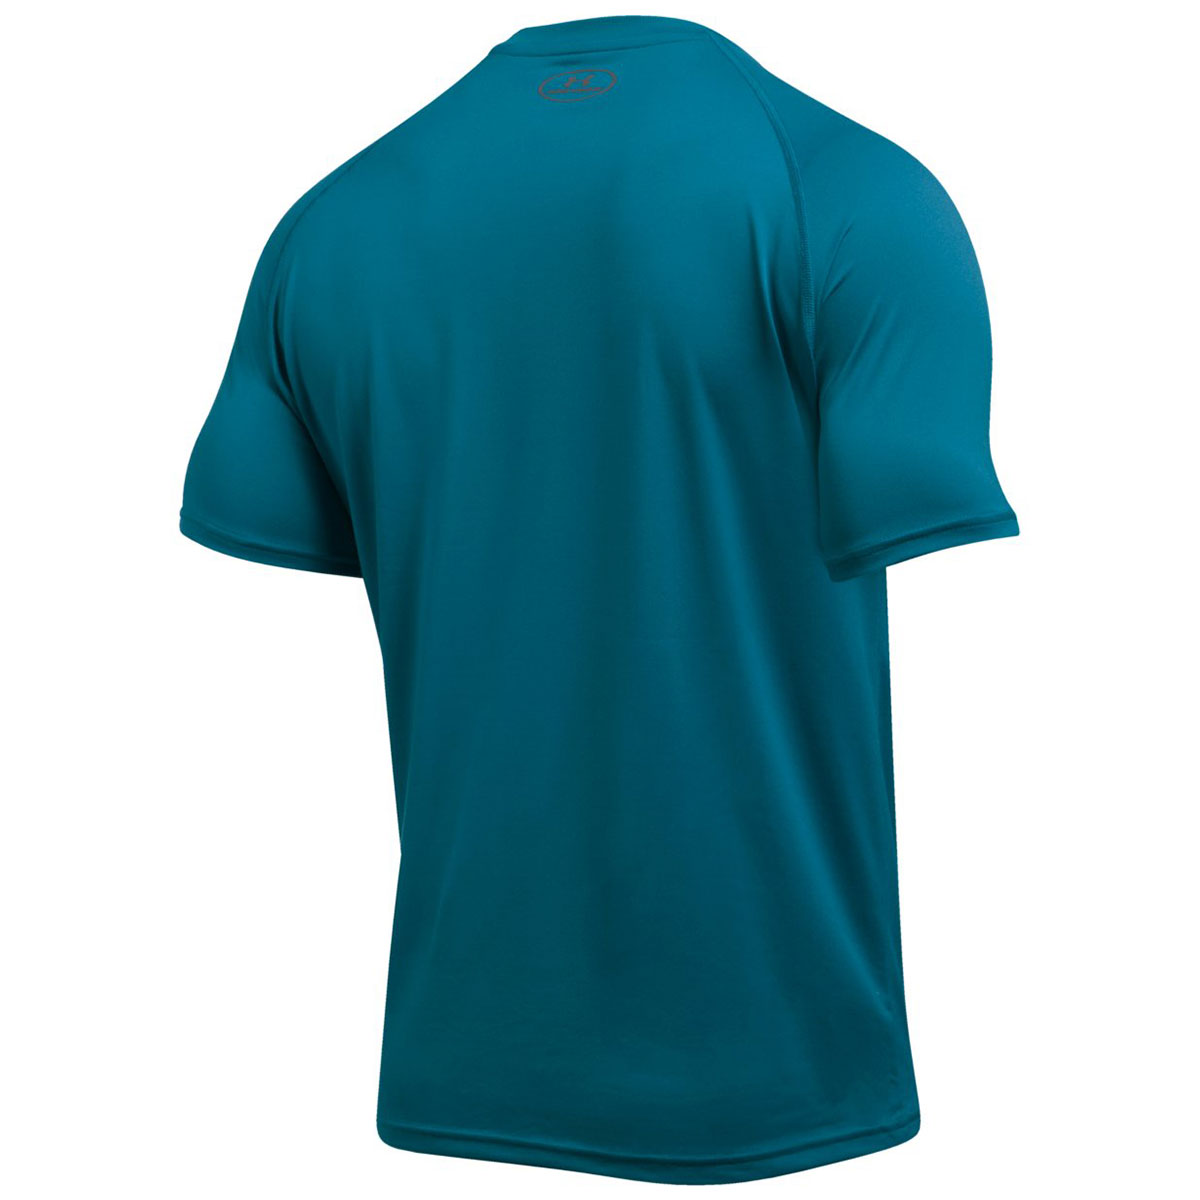 198e3d89 Details about Under Armour Mens UA Tech SS T Shirt HeatGear Training 31%  OFF RRP